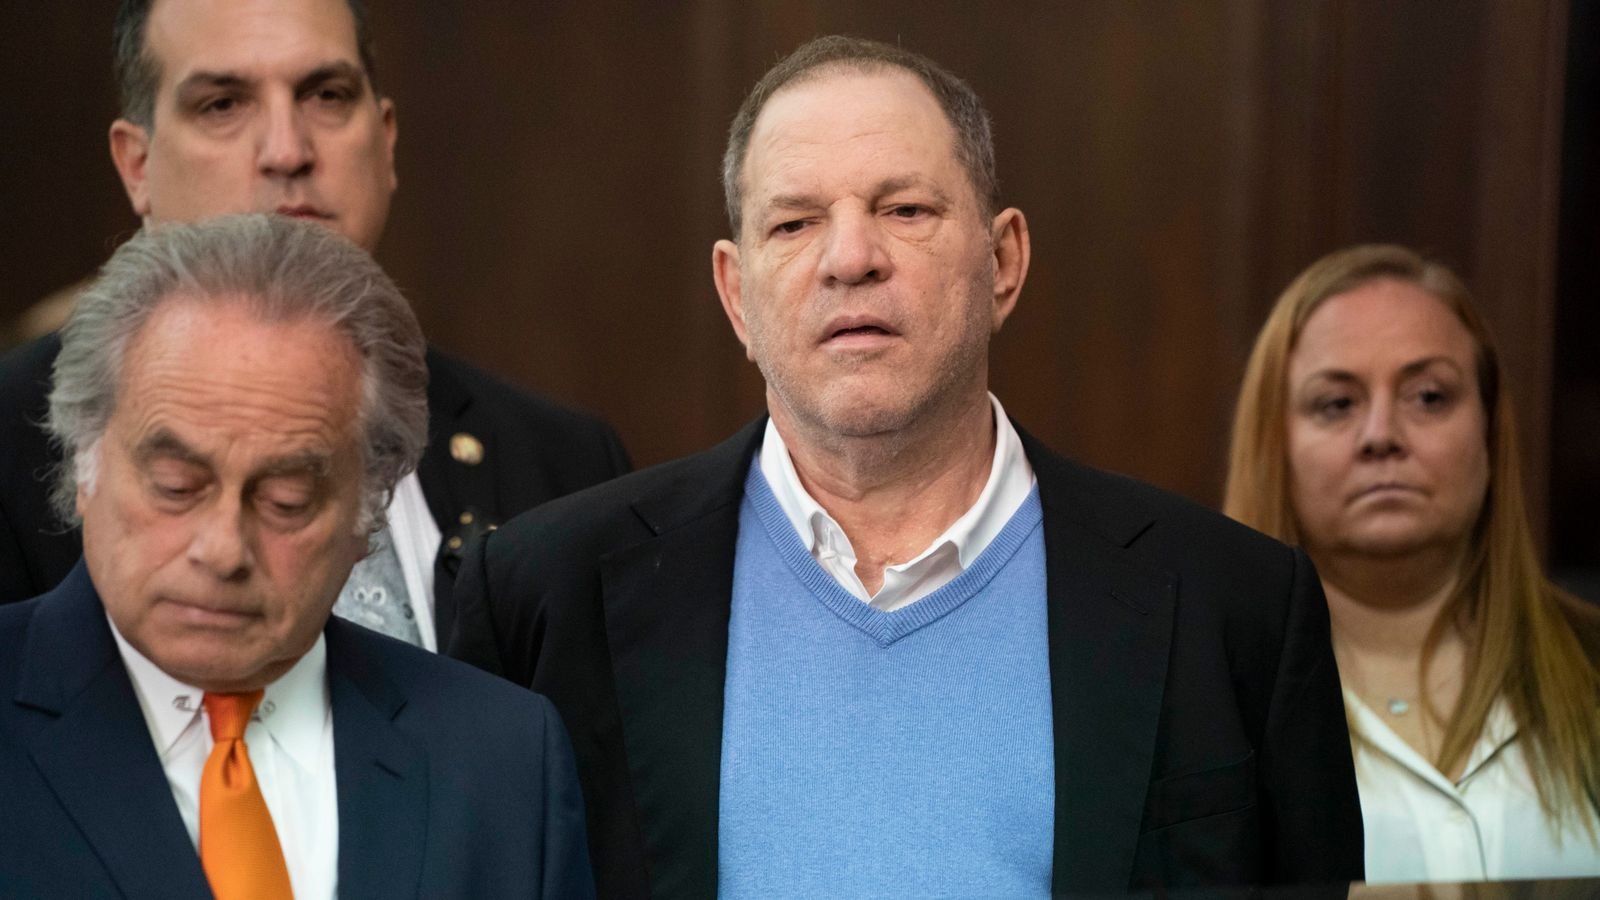 Harvey Weinstein could face life in prison after new sexual allegations